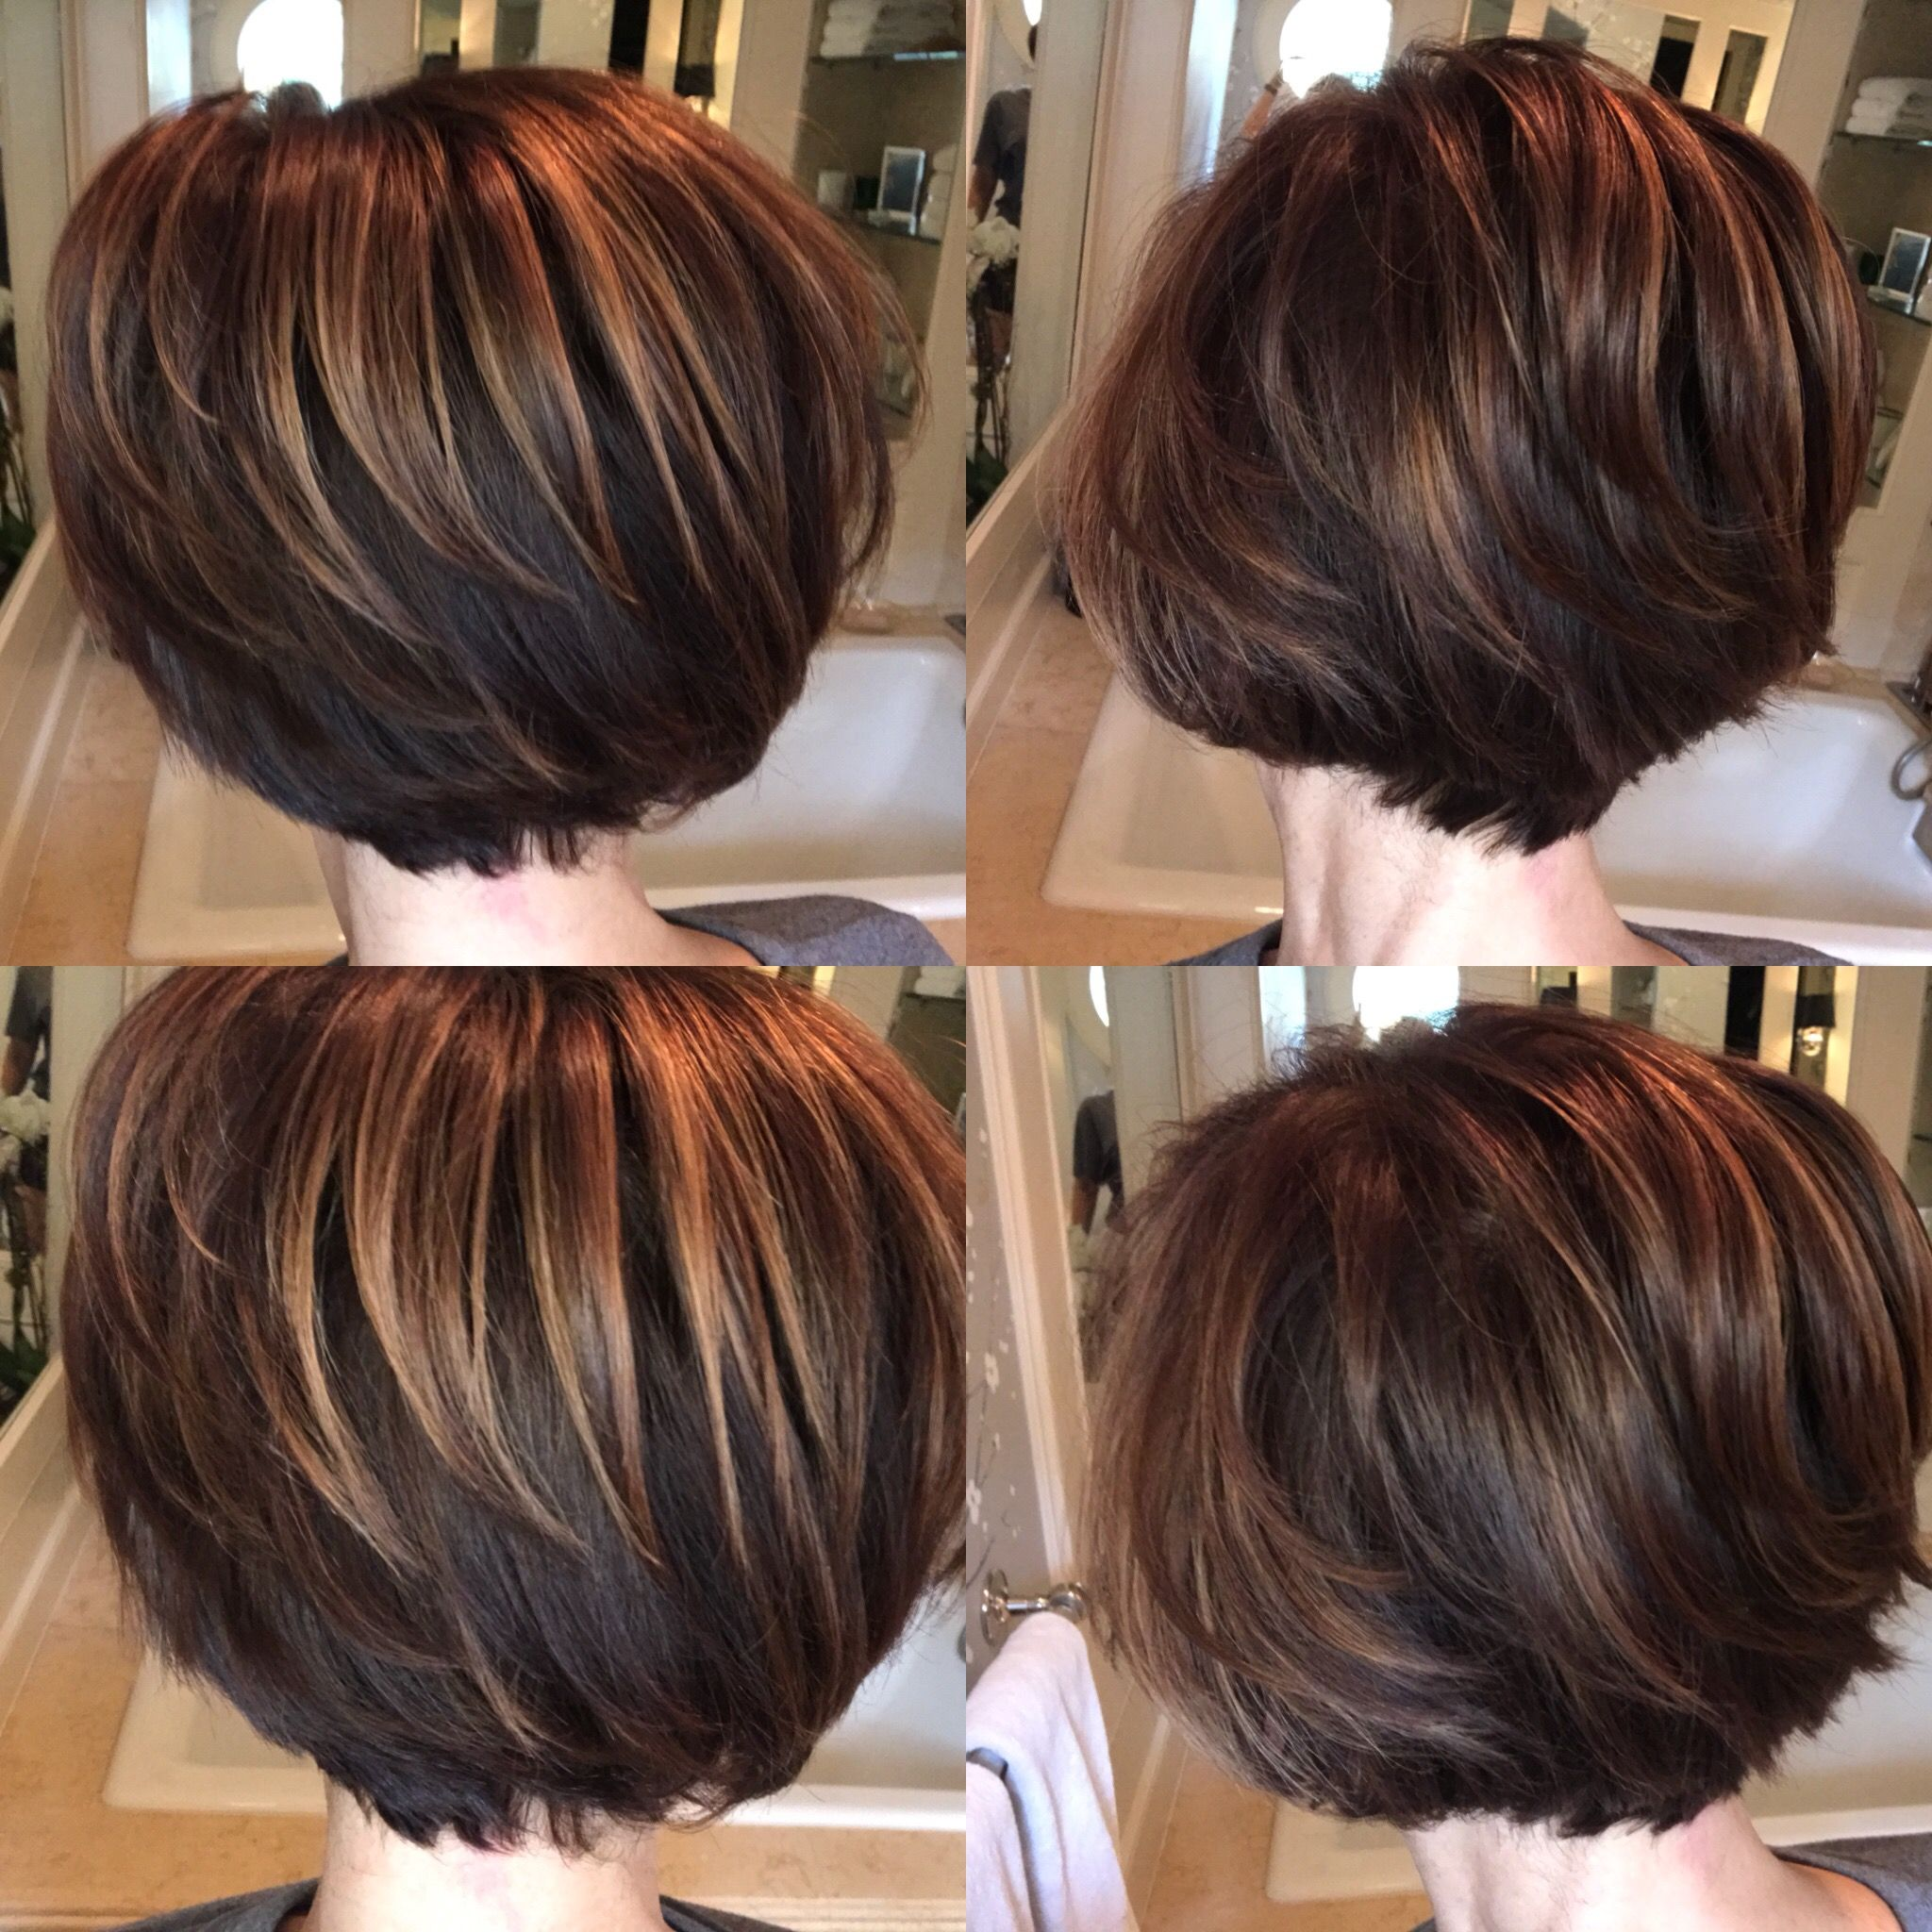 Pin By Deb Love On Hair Cuts Pinterest Hair Style Haircuts And